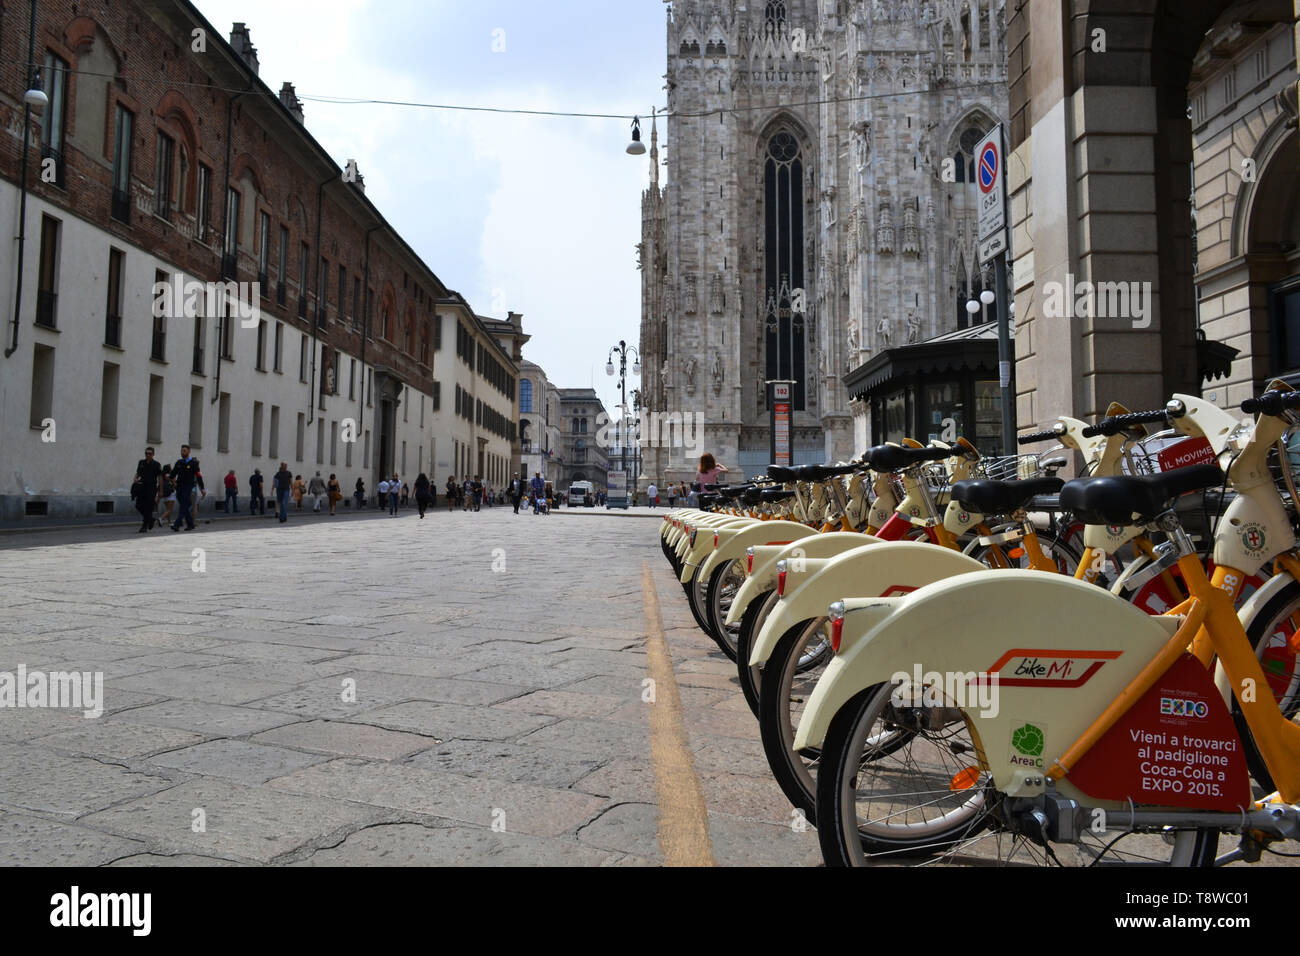 Milan/Italy - June 1, 2015: Rental citybikes branded EXPO Milano 2015 are parked at the station near Duomo of Milan. - Stock Image